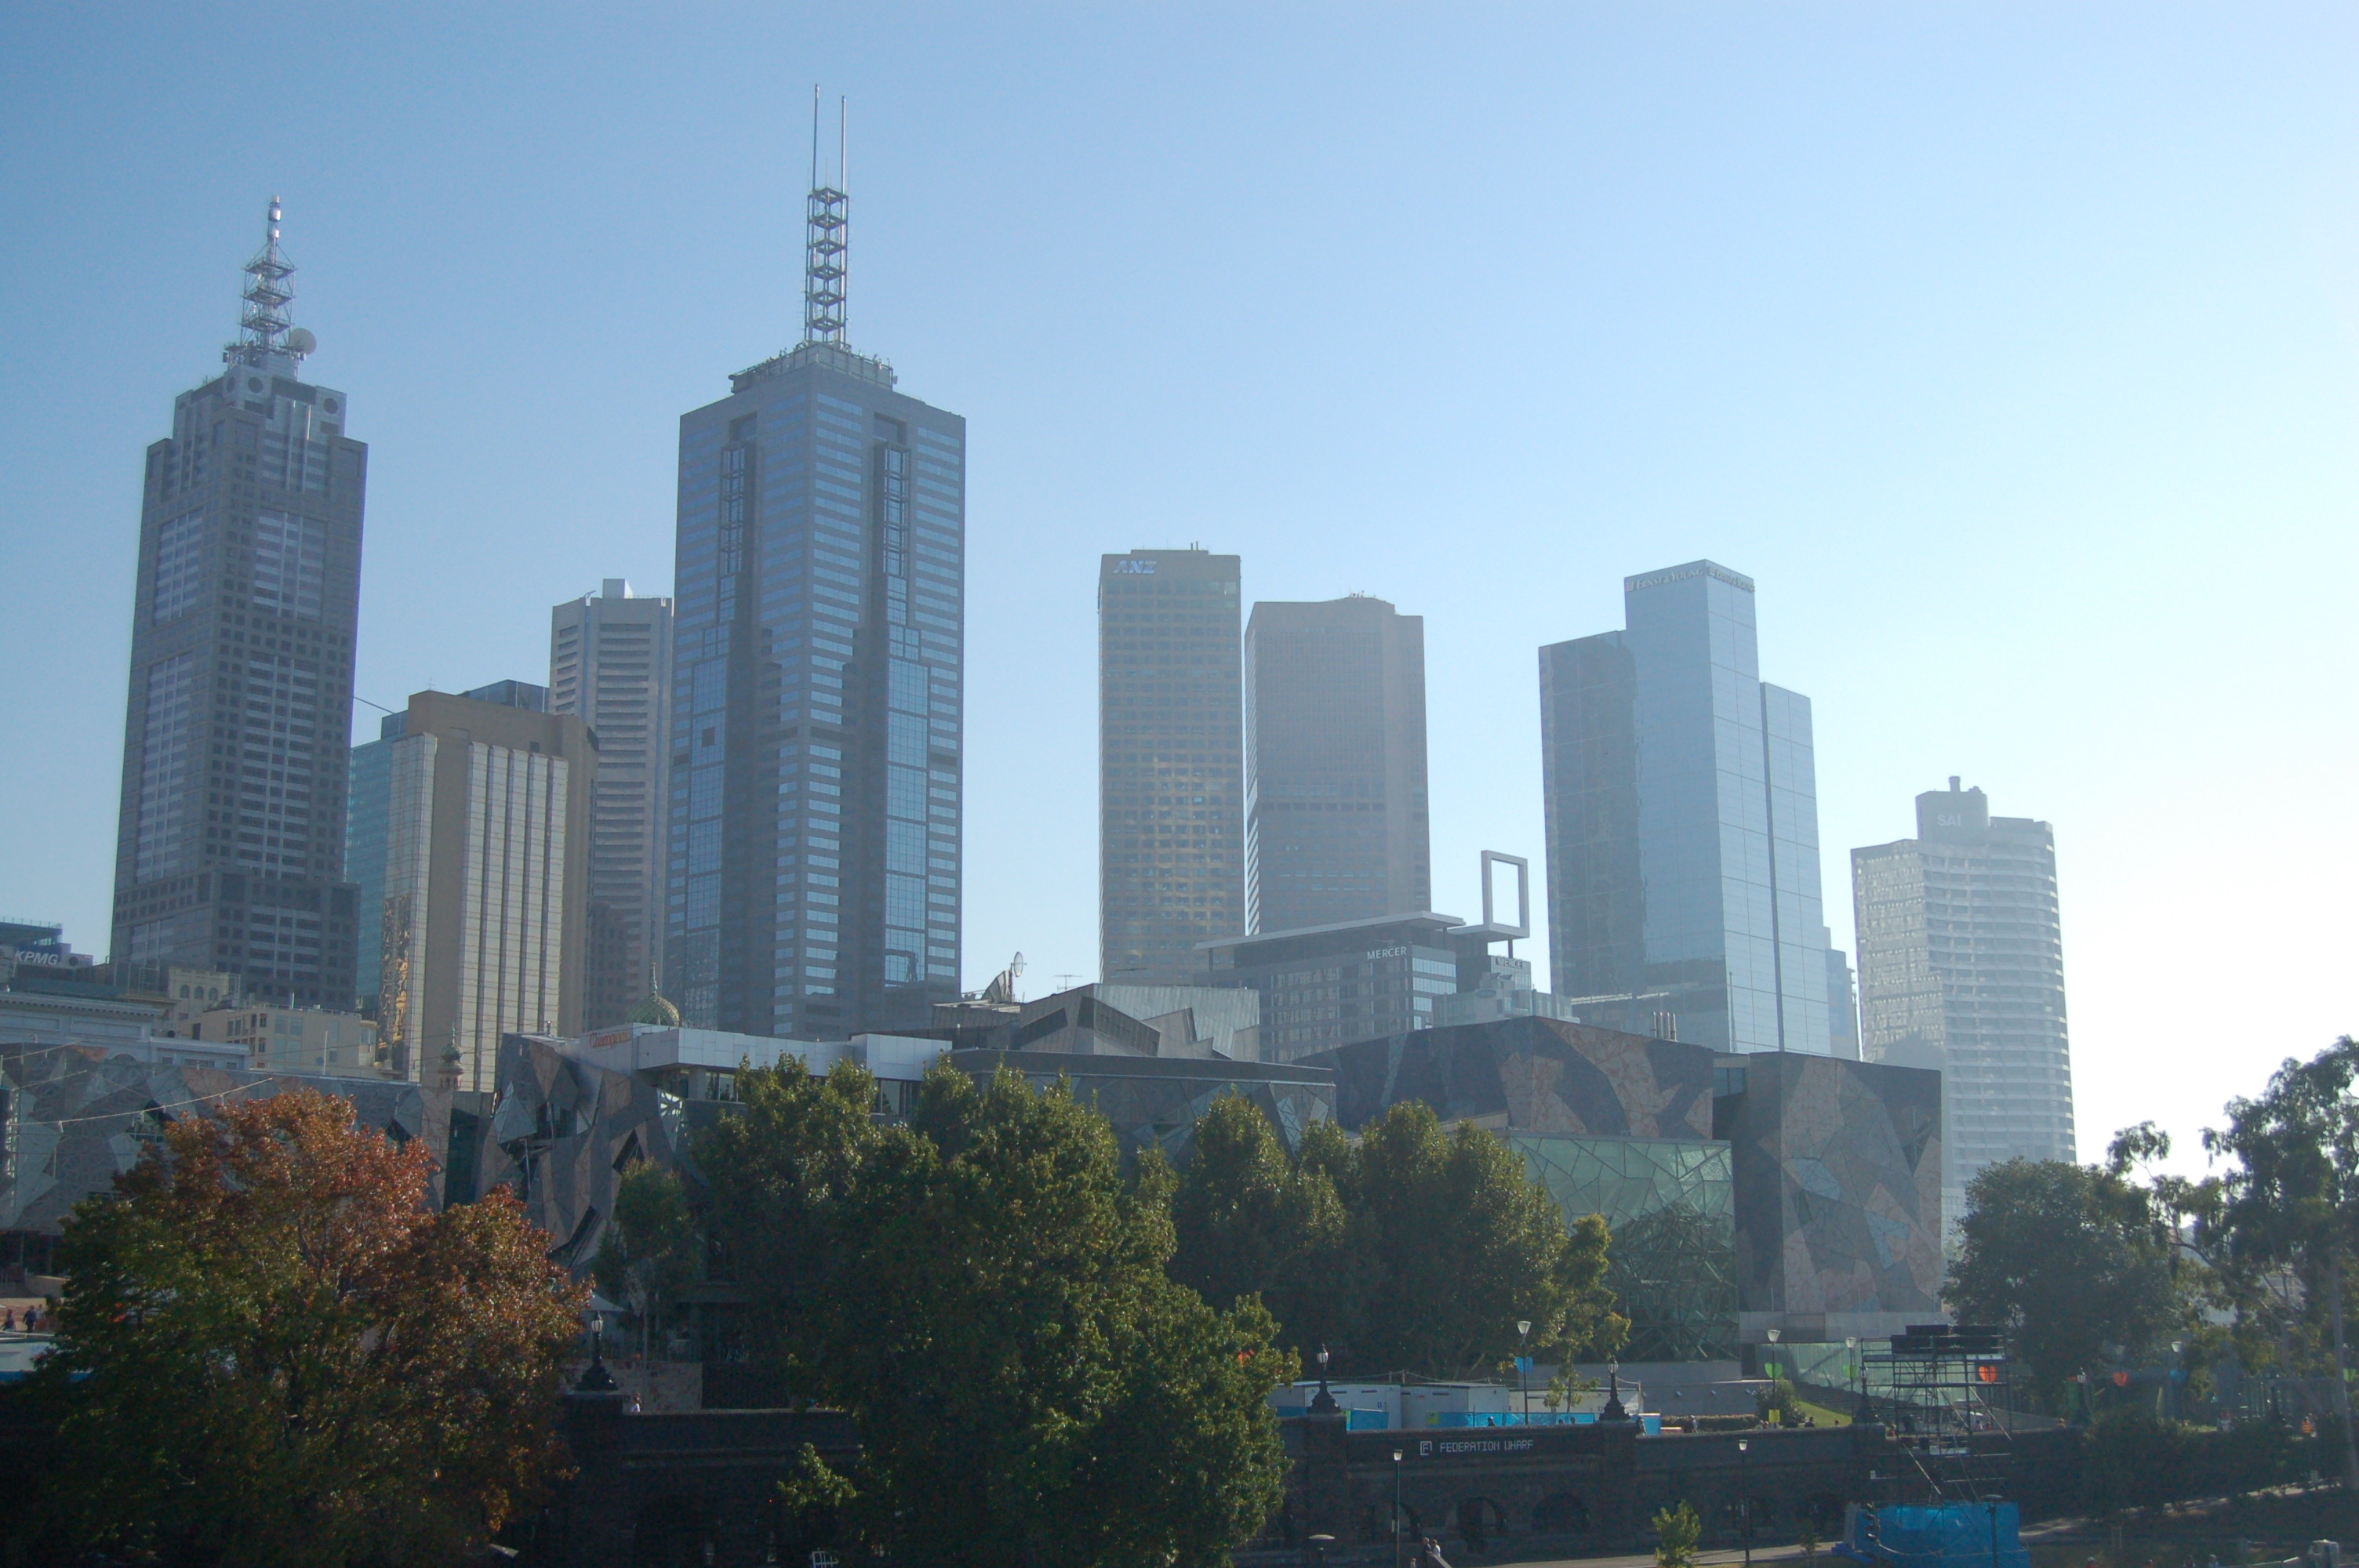 Melbourne_City_Misty_Skyline_Federation_Square